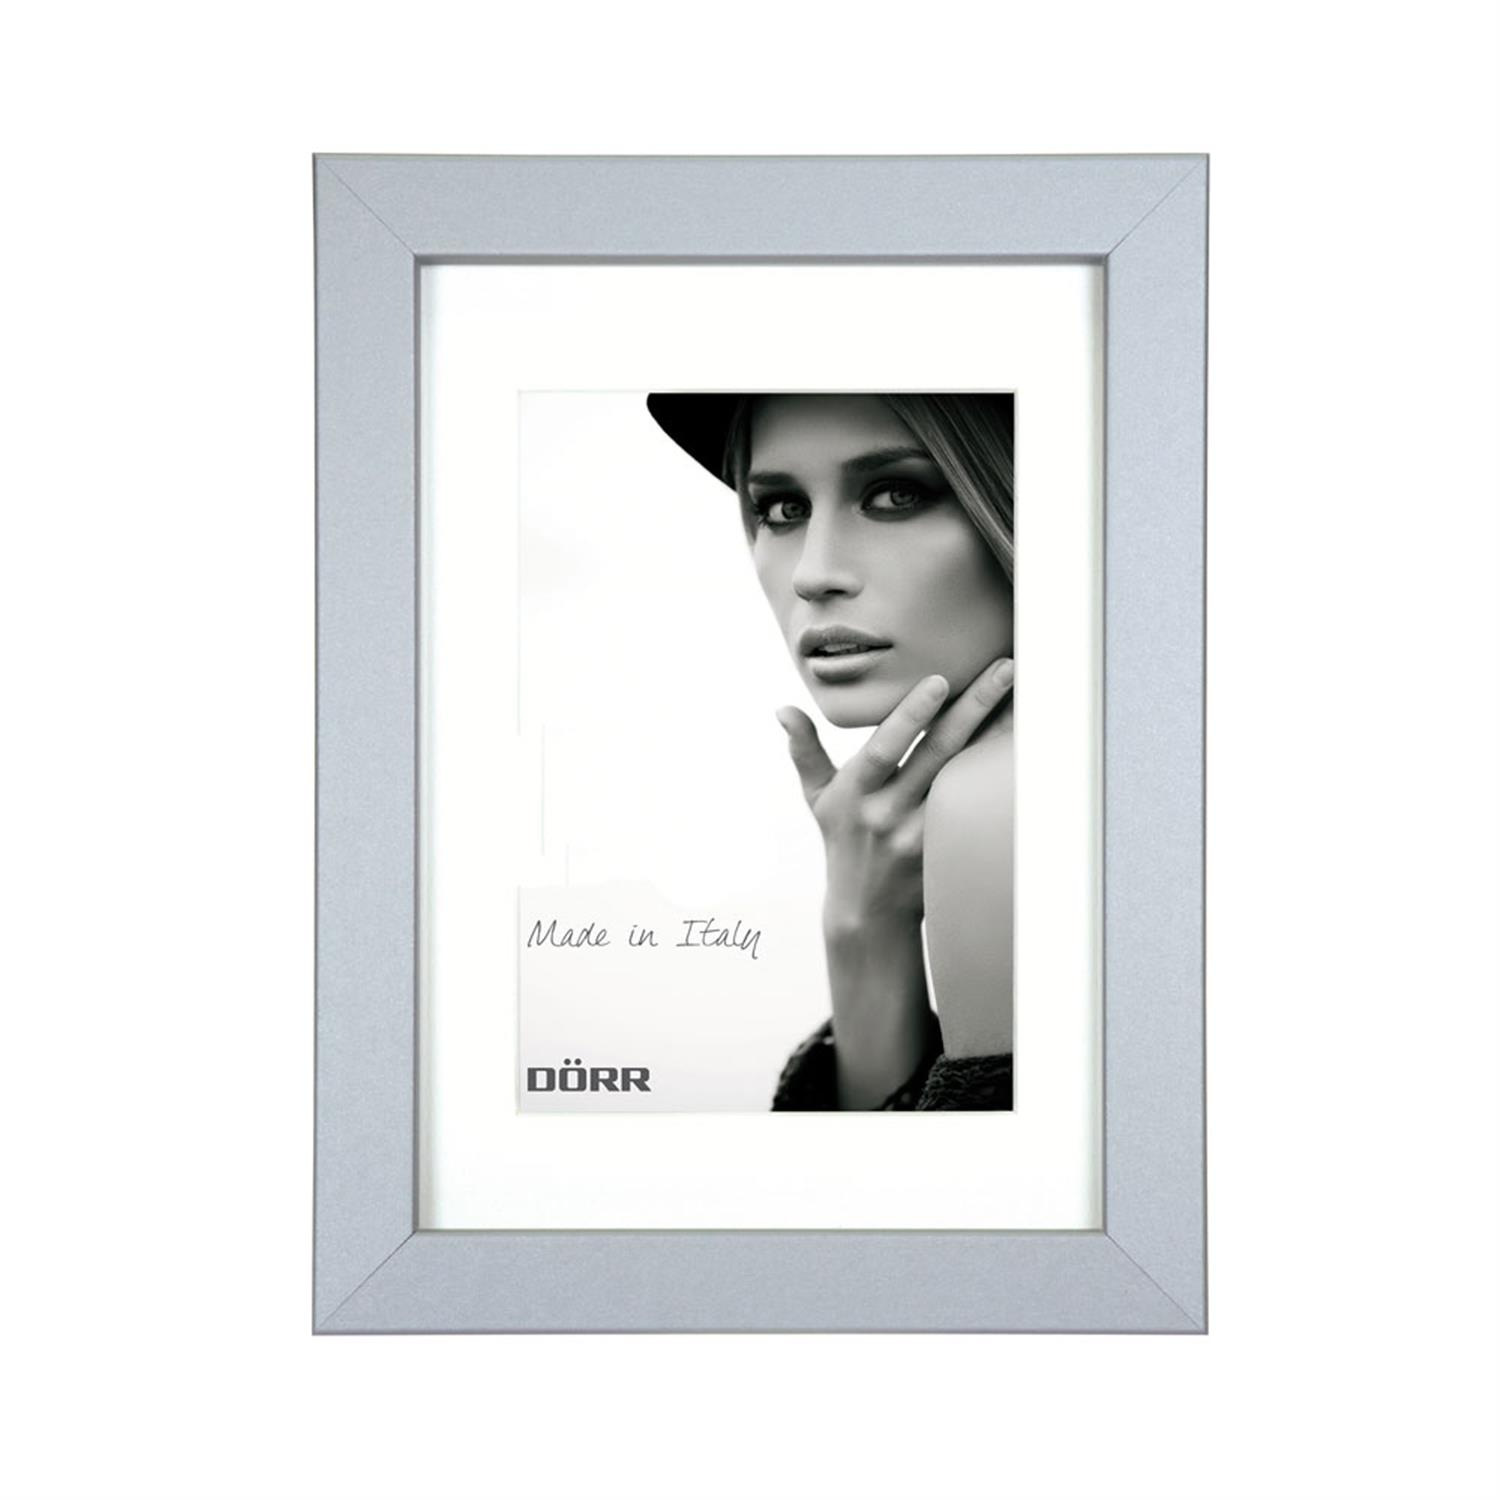 Dorr Bloc Silver 8x6 inches Wood Photo Frame with 6x4 inch insert